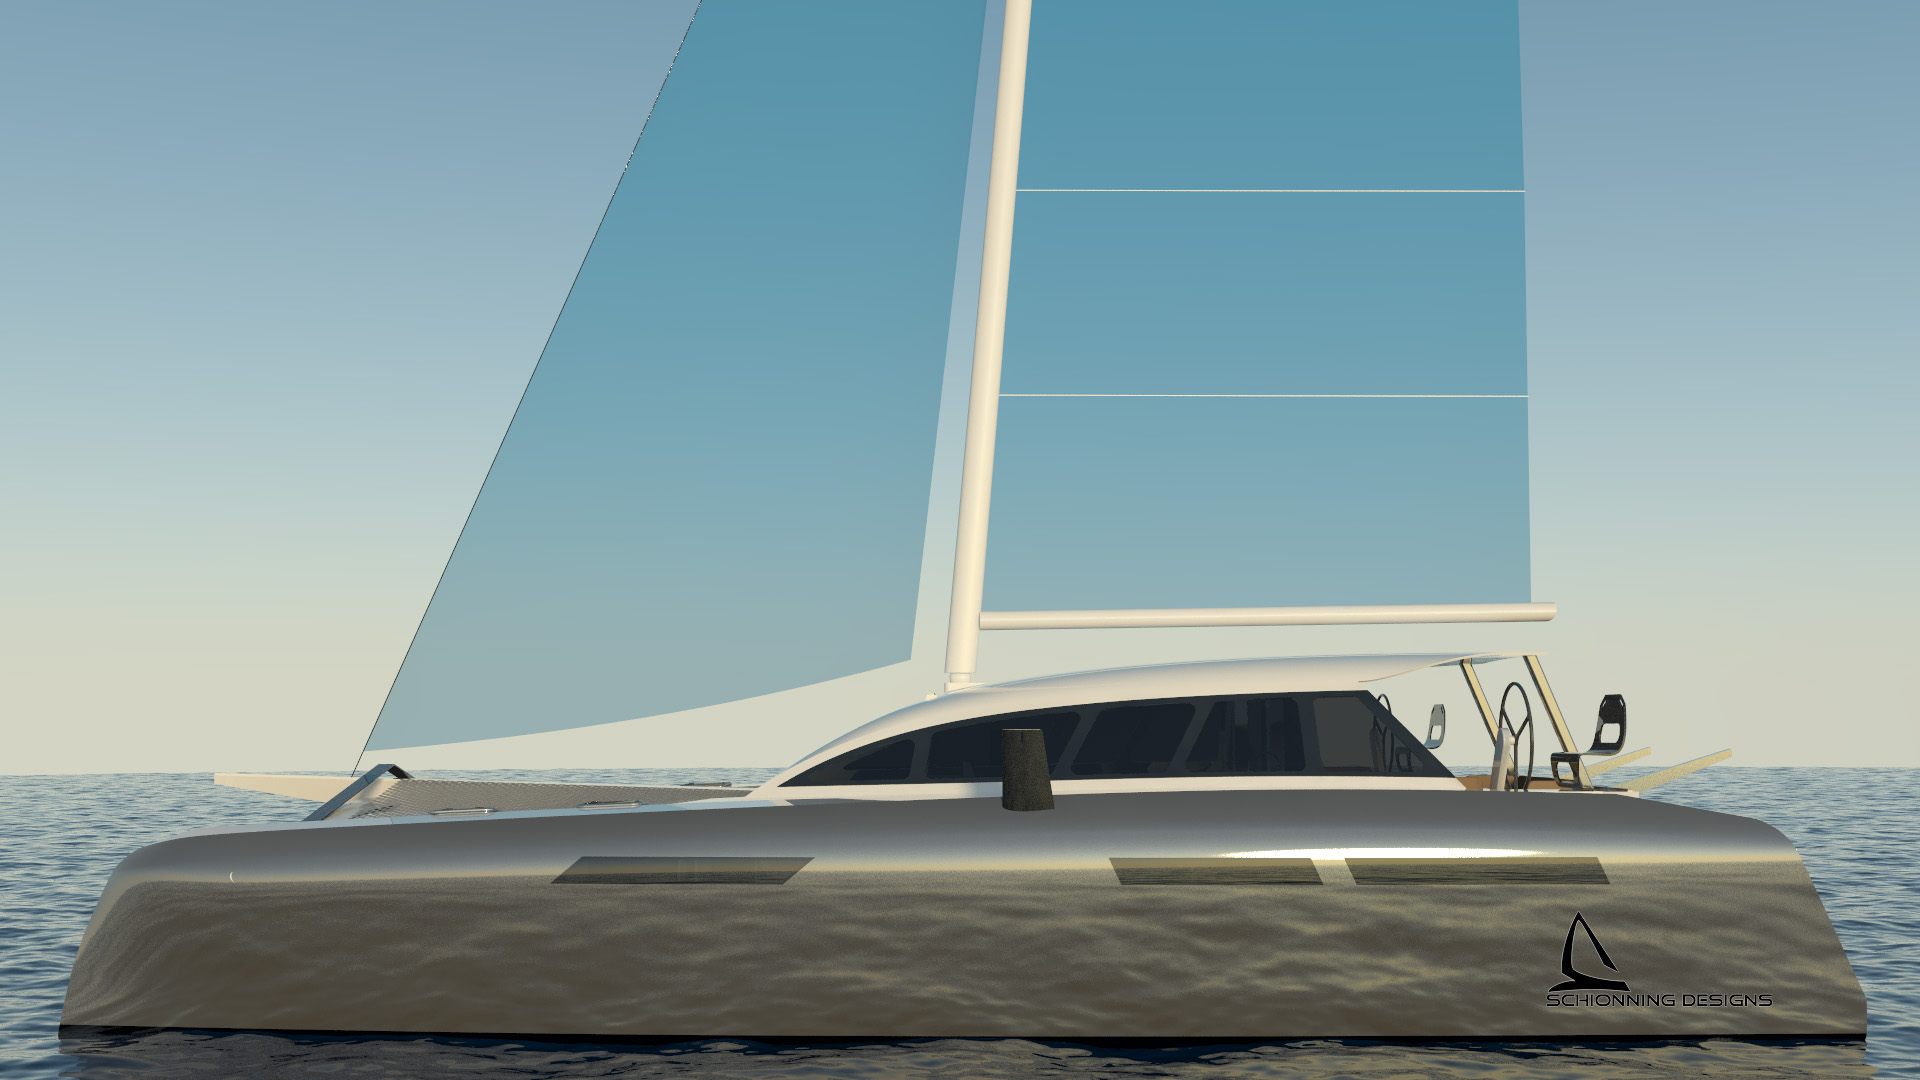 The CM²46 Catamaran Designed by Schionning Designs is primarily designed for the purist, experienced and